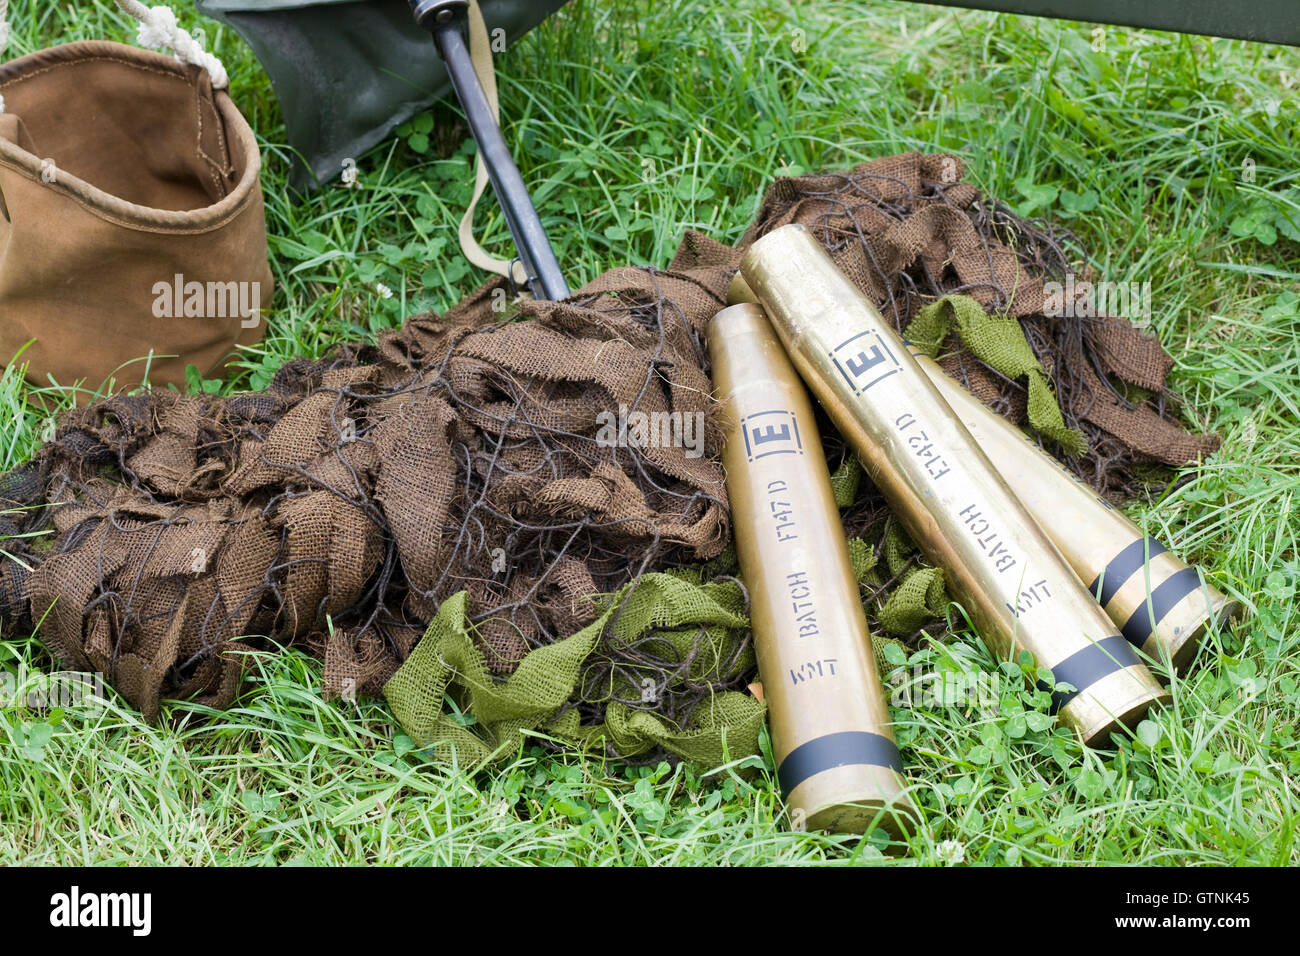 Mortar shell casings on camouflage netting - Stock Image